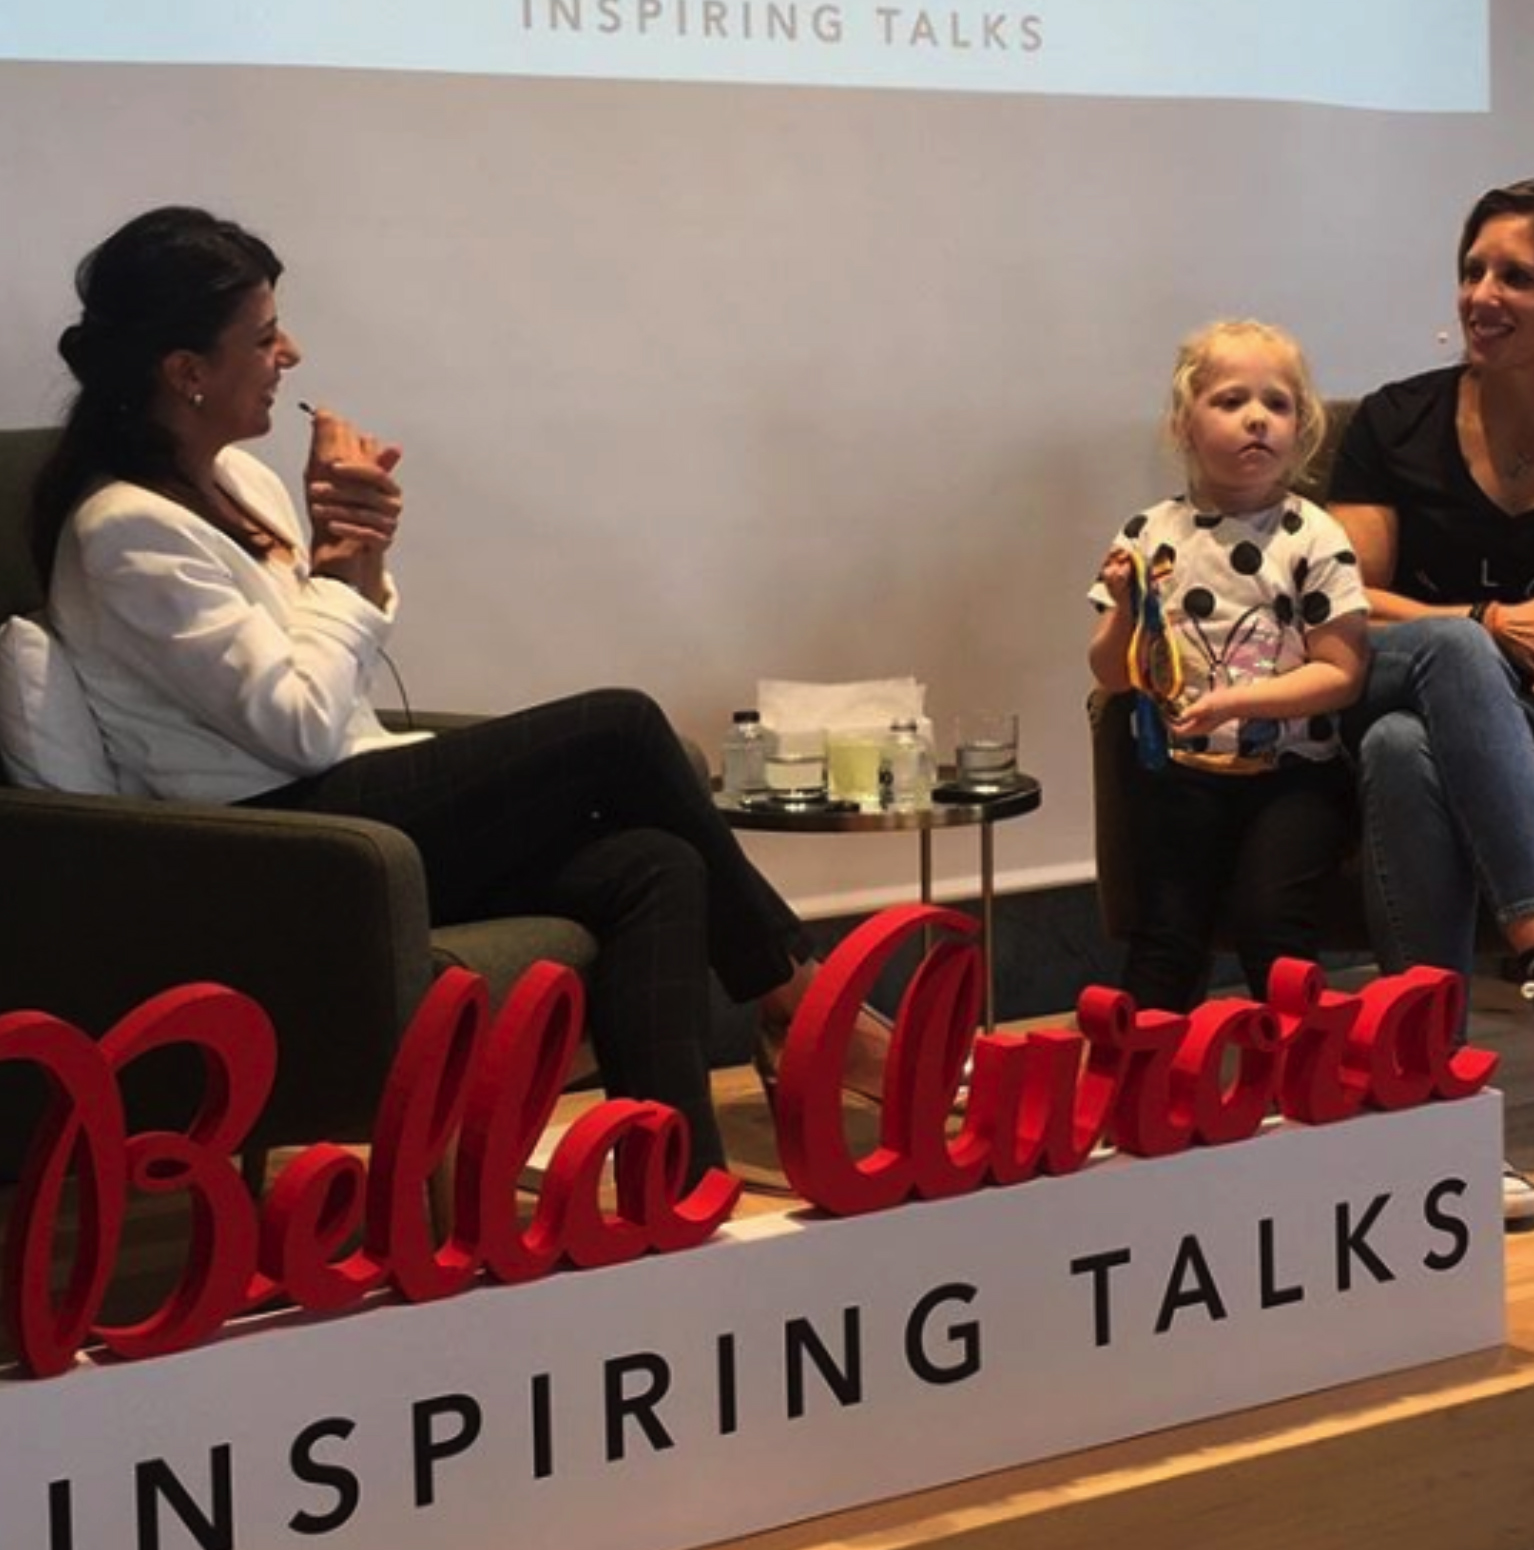 The first edition of #BellaAuroraInspiringTalks is a resounding success